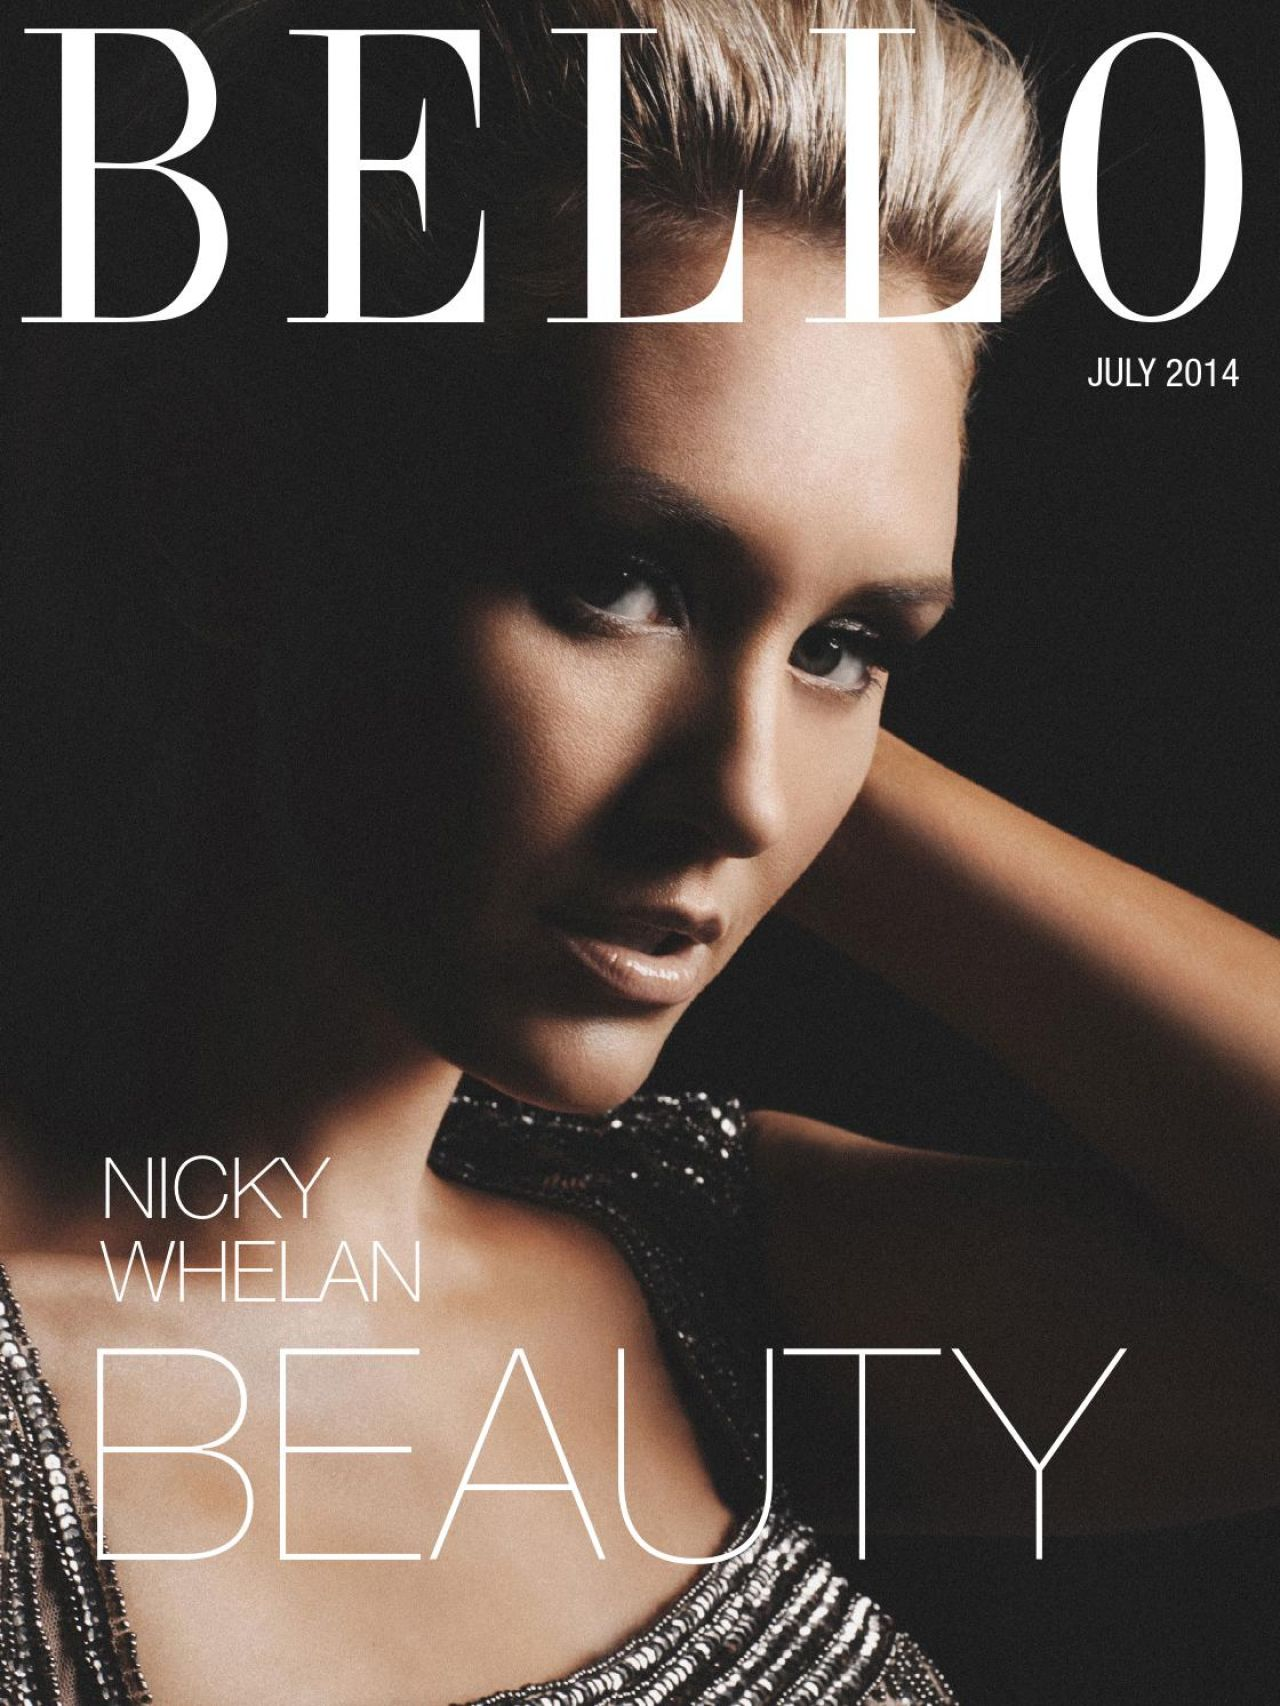 Nicky Whelan - Bello Magazine July 2014 Issue